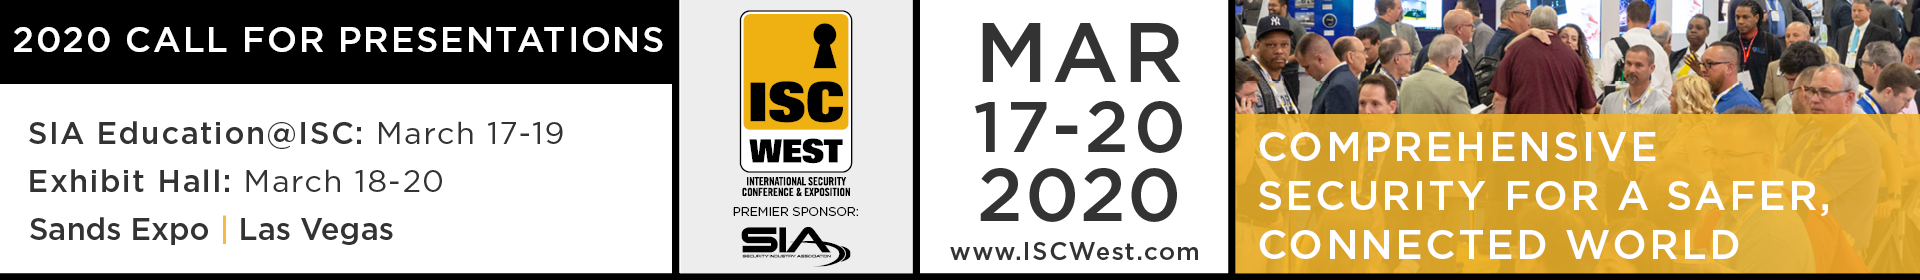 ISC West 2020 Event Banner